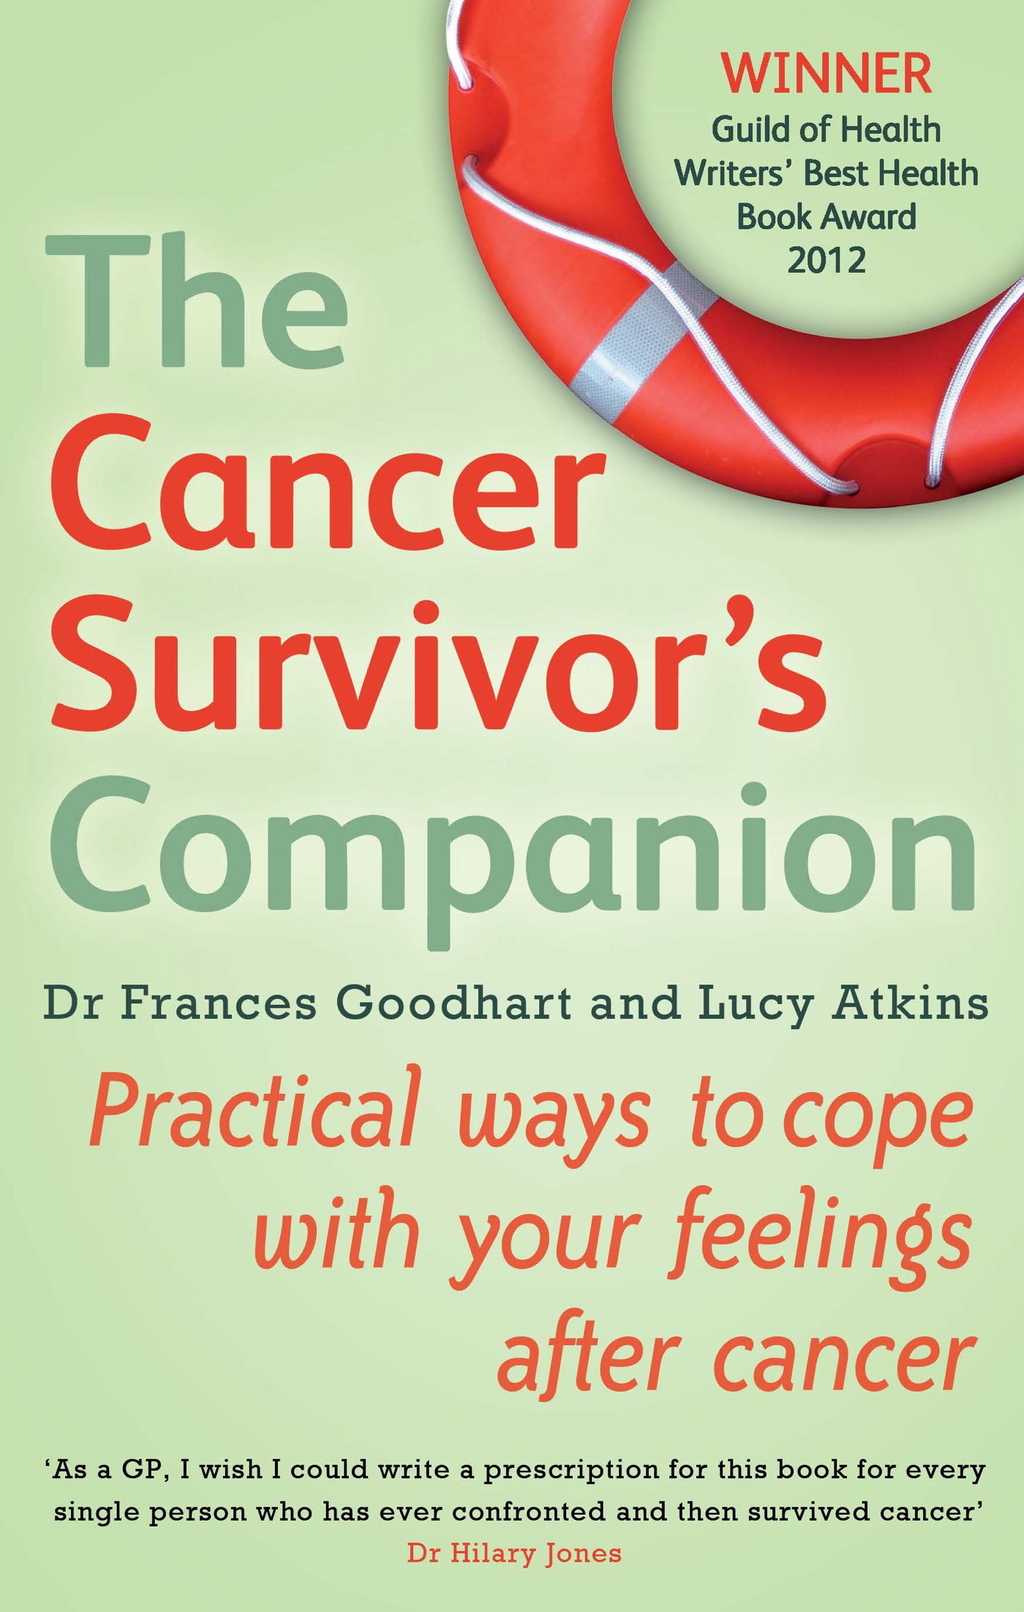 The Cancer Survivor's Companion